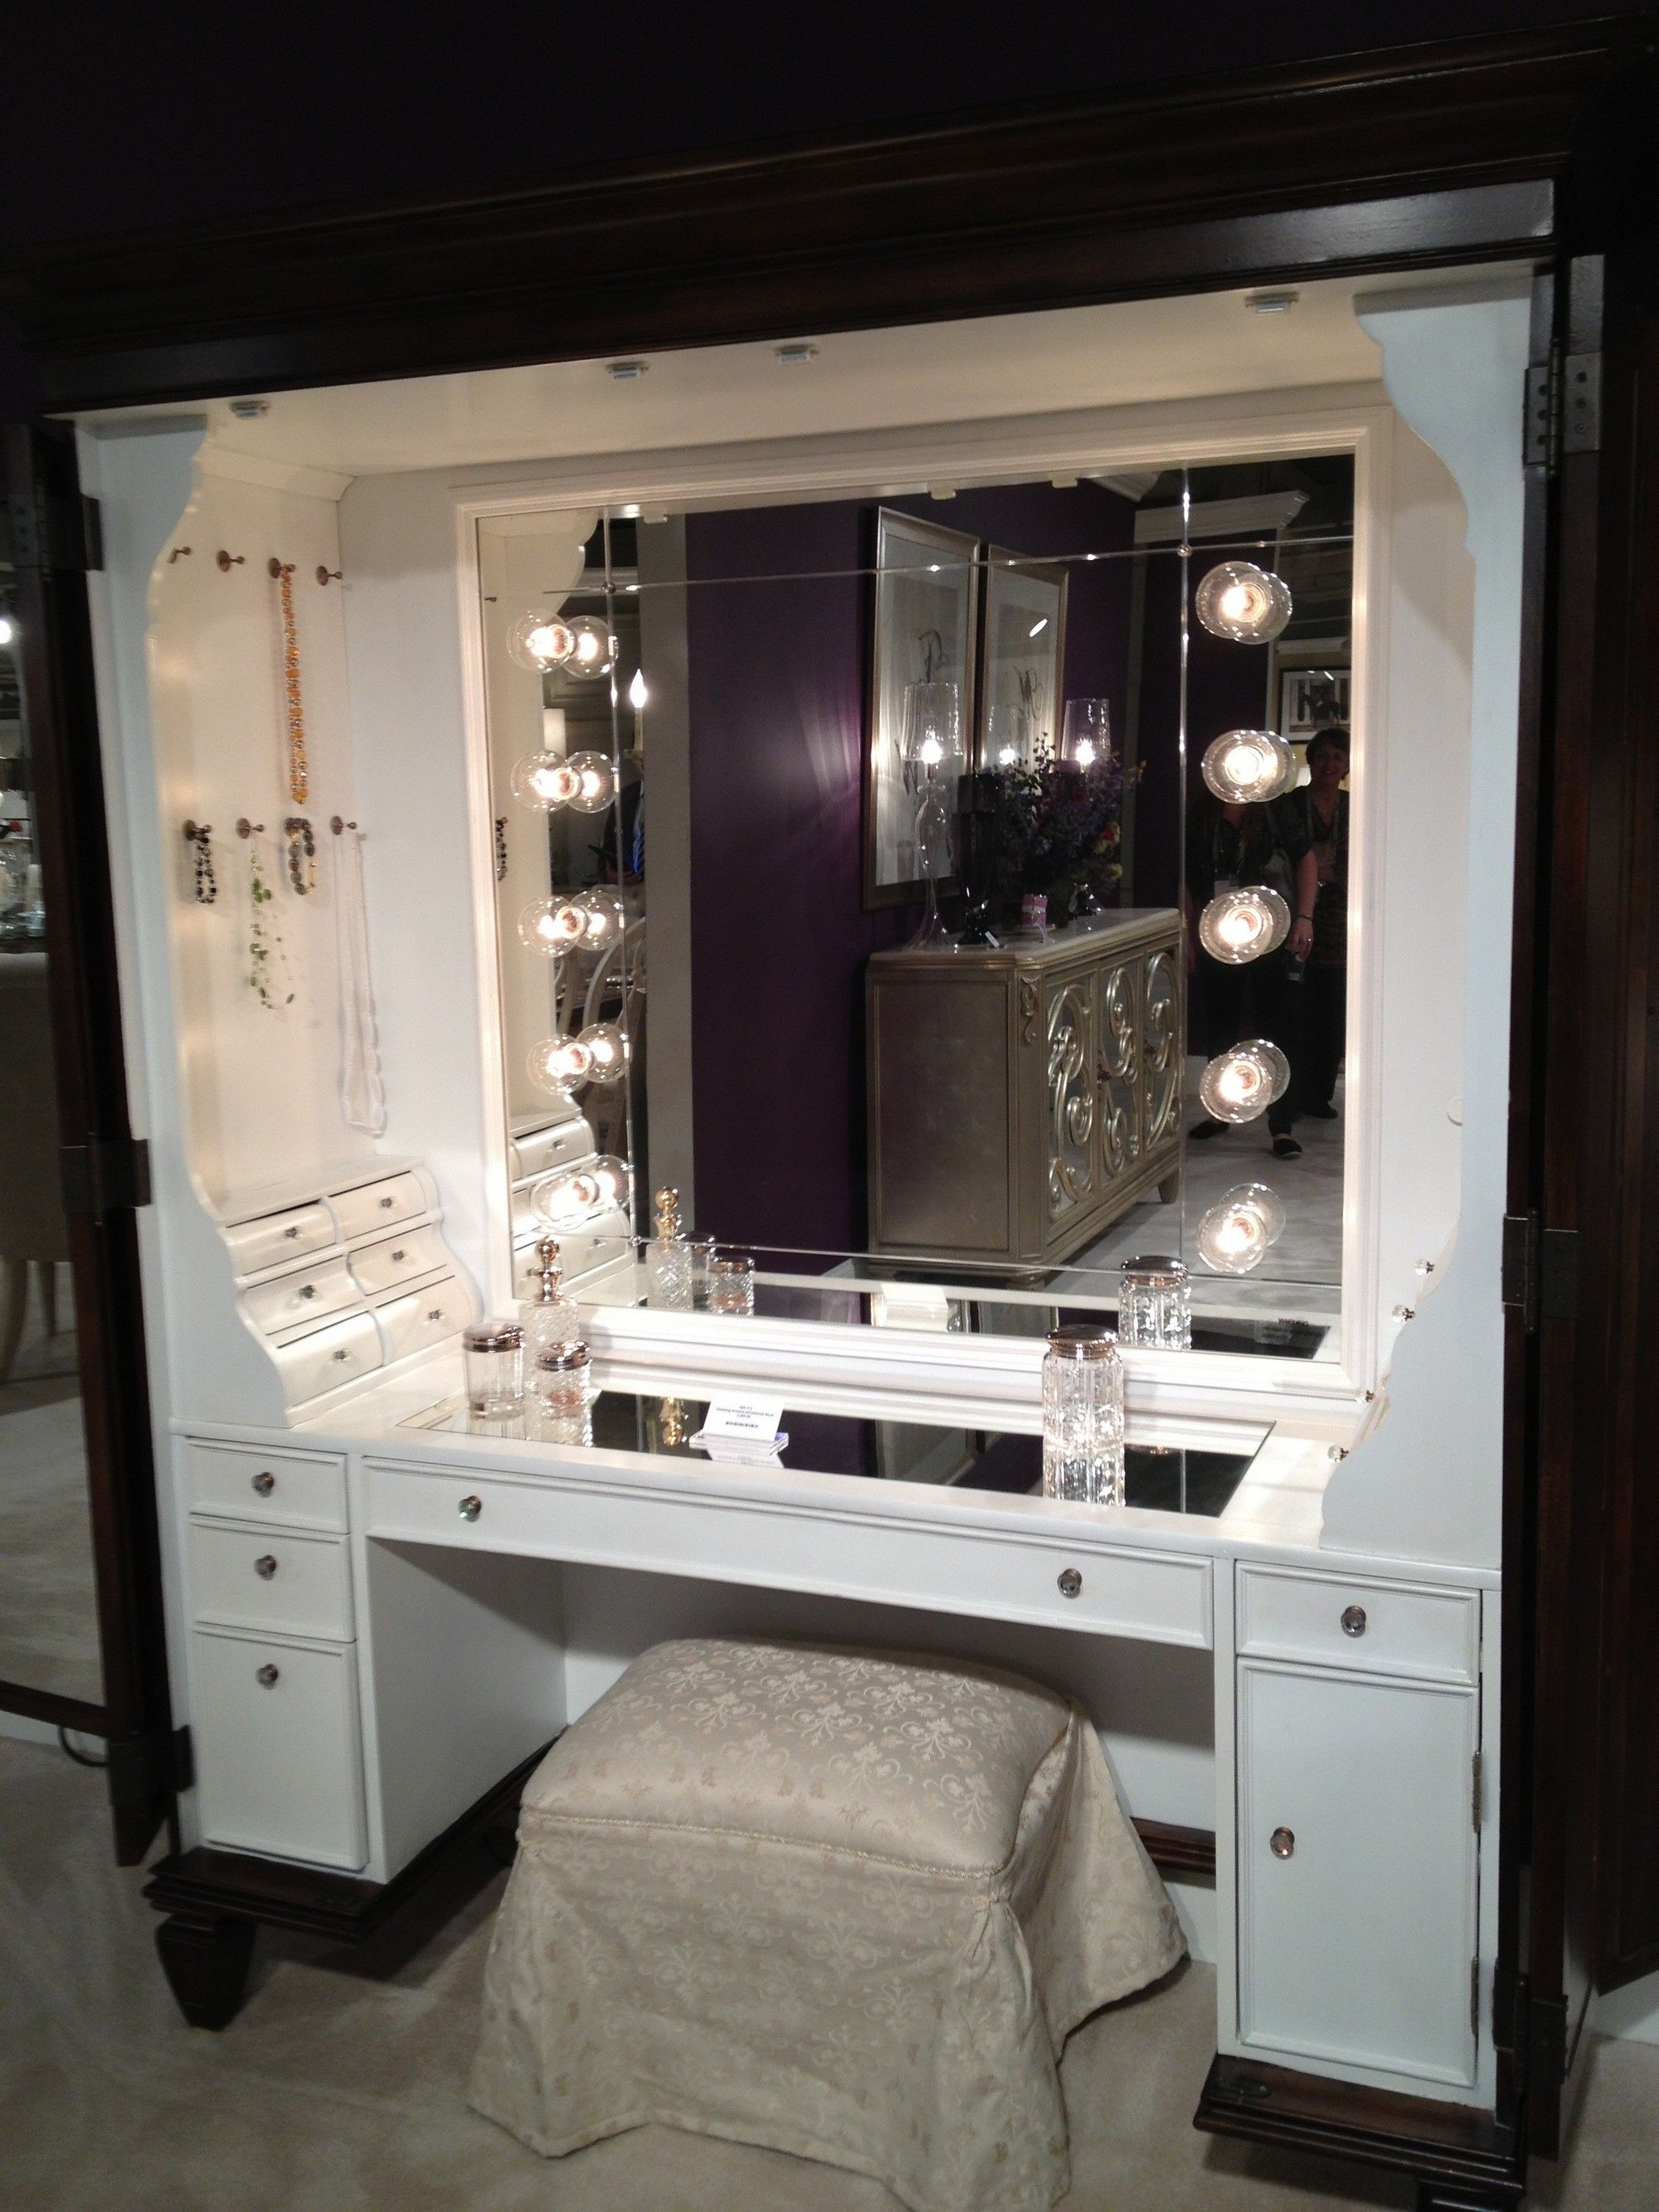 Big Vanity Mirror With Lights Mesmerizing Furniture Black Makeup Table With Lighted Mirror And Small Fabric Design Inspiration